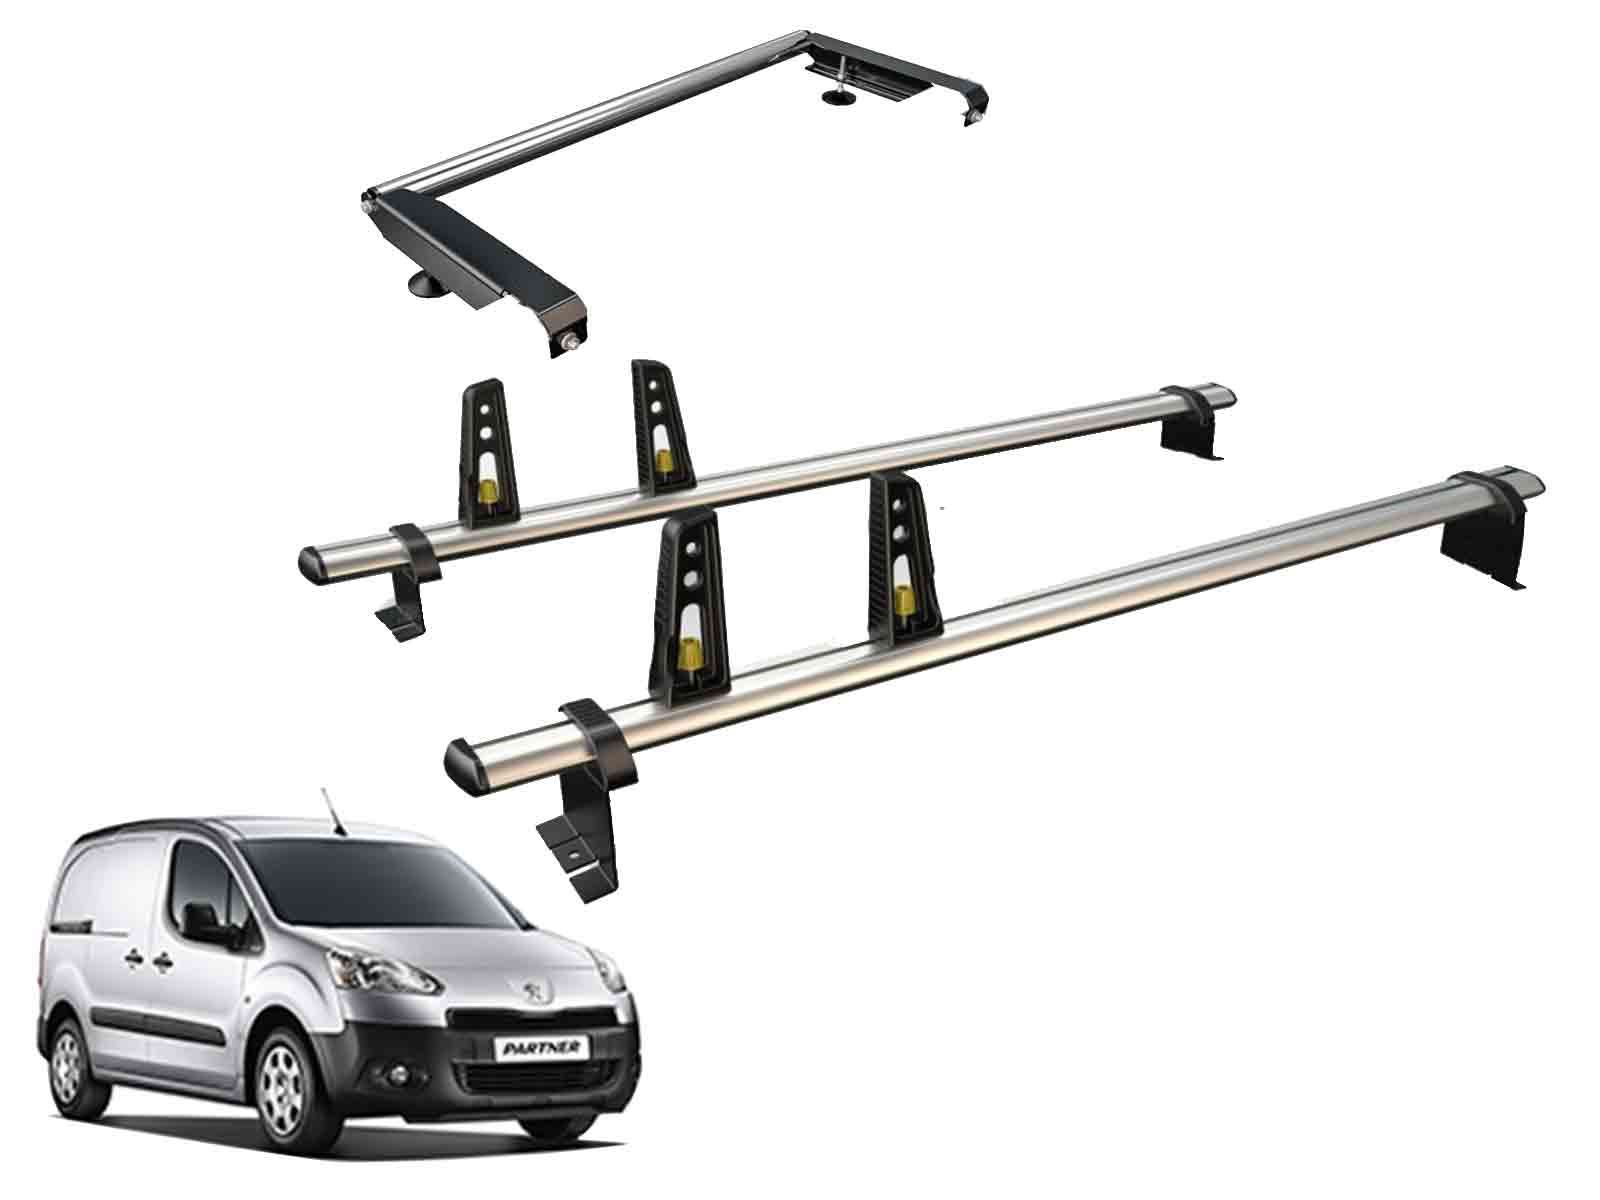 Citroen Berlingo//Peugeot Partner roof rack 2018 Roller 2 bars